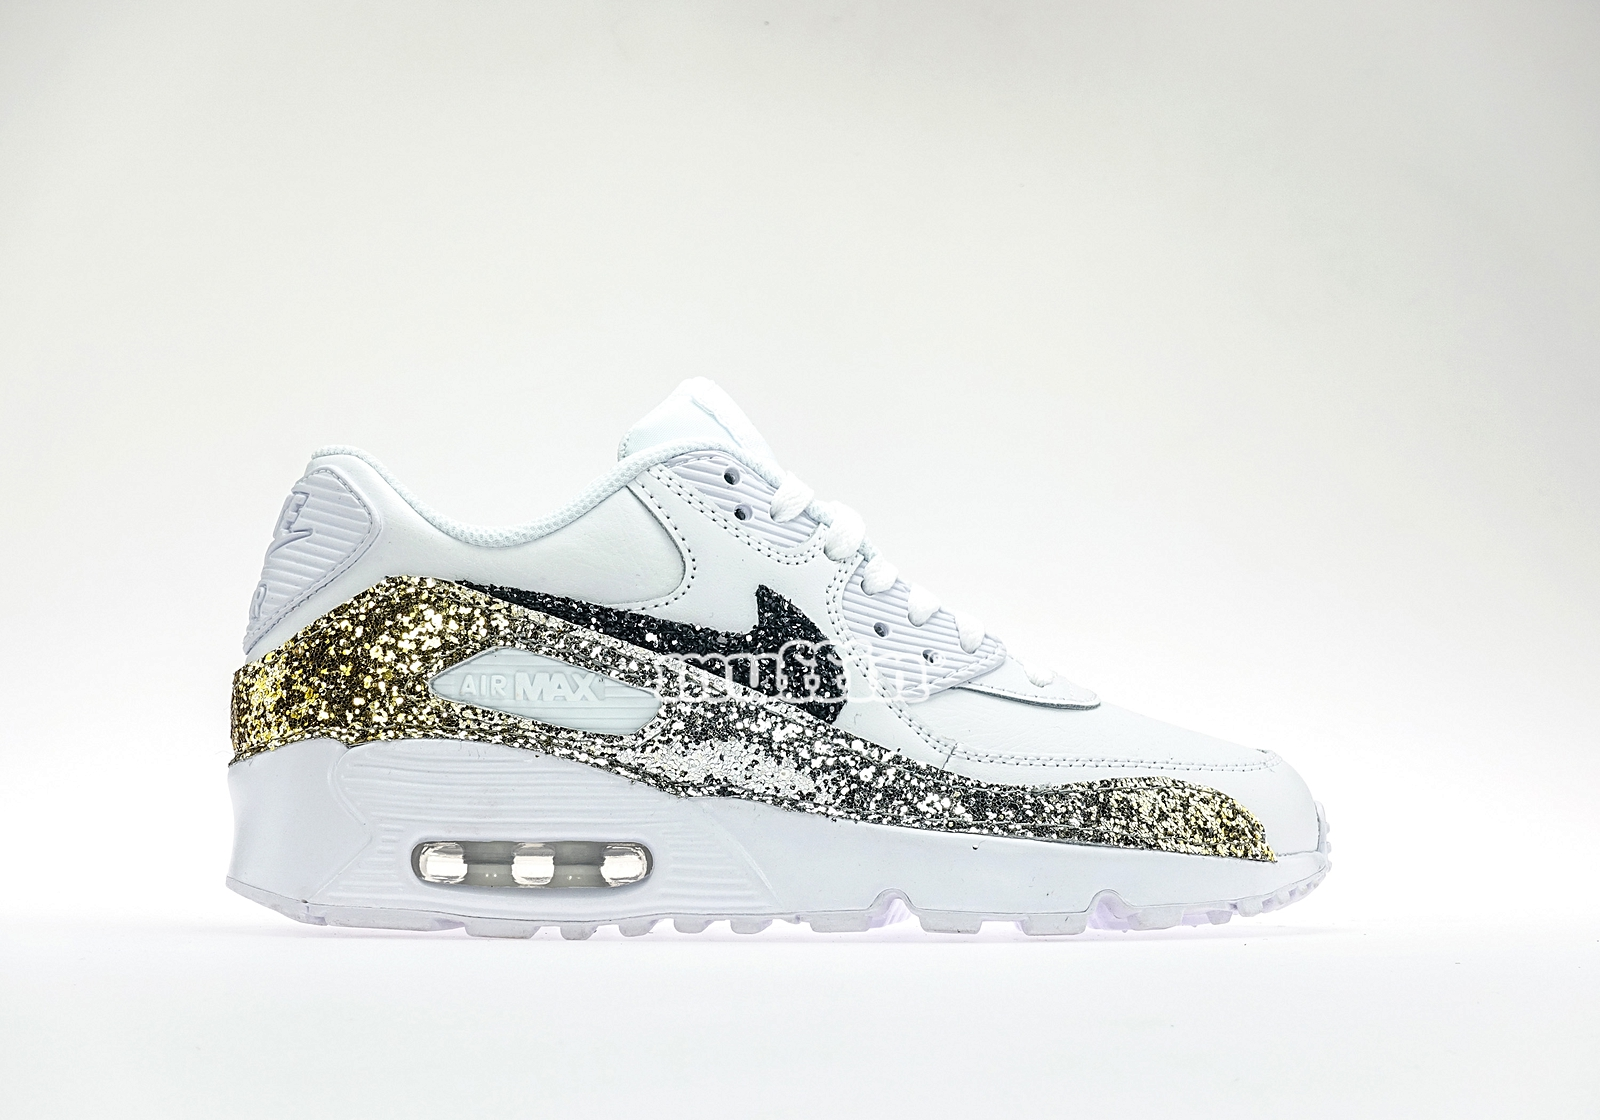 Nike air max degrade glitter gold silver jpg 1600x1120 Gold glitter nike  high tops 381fb26de6